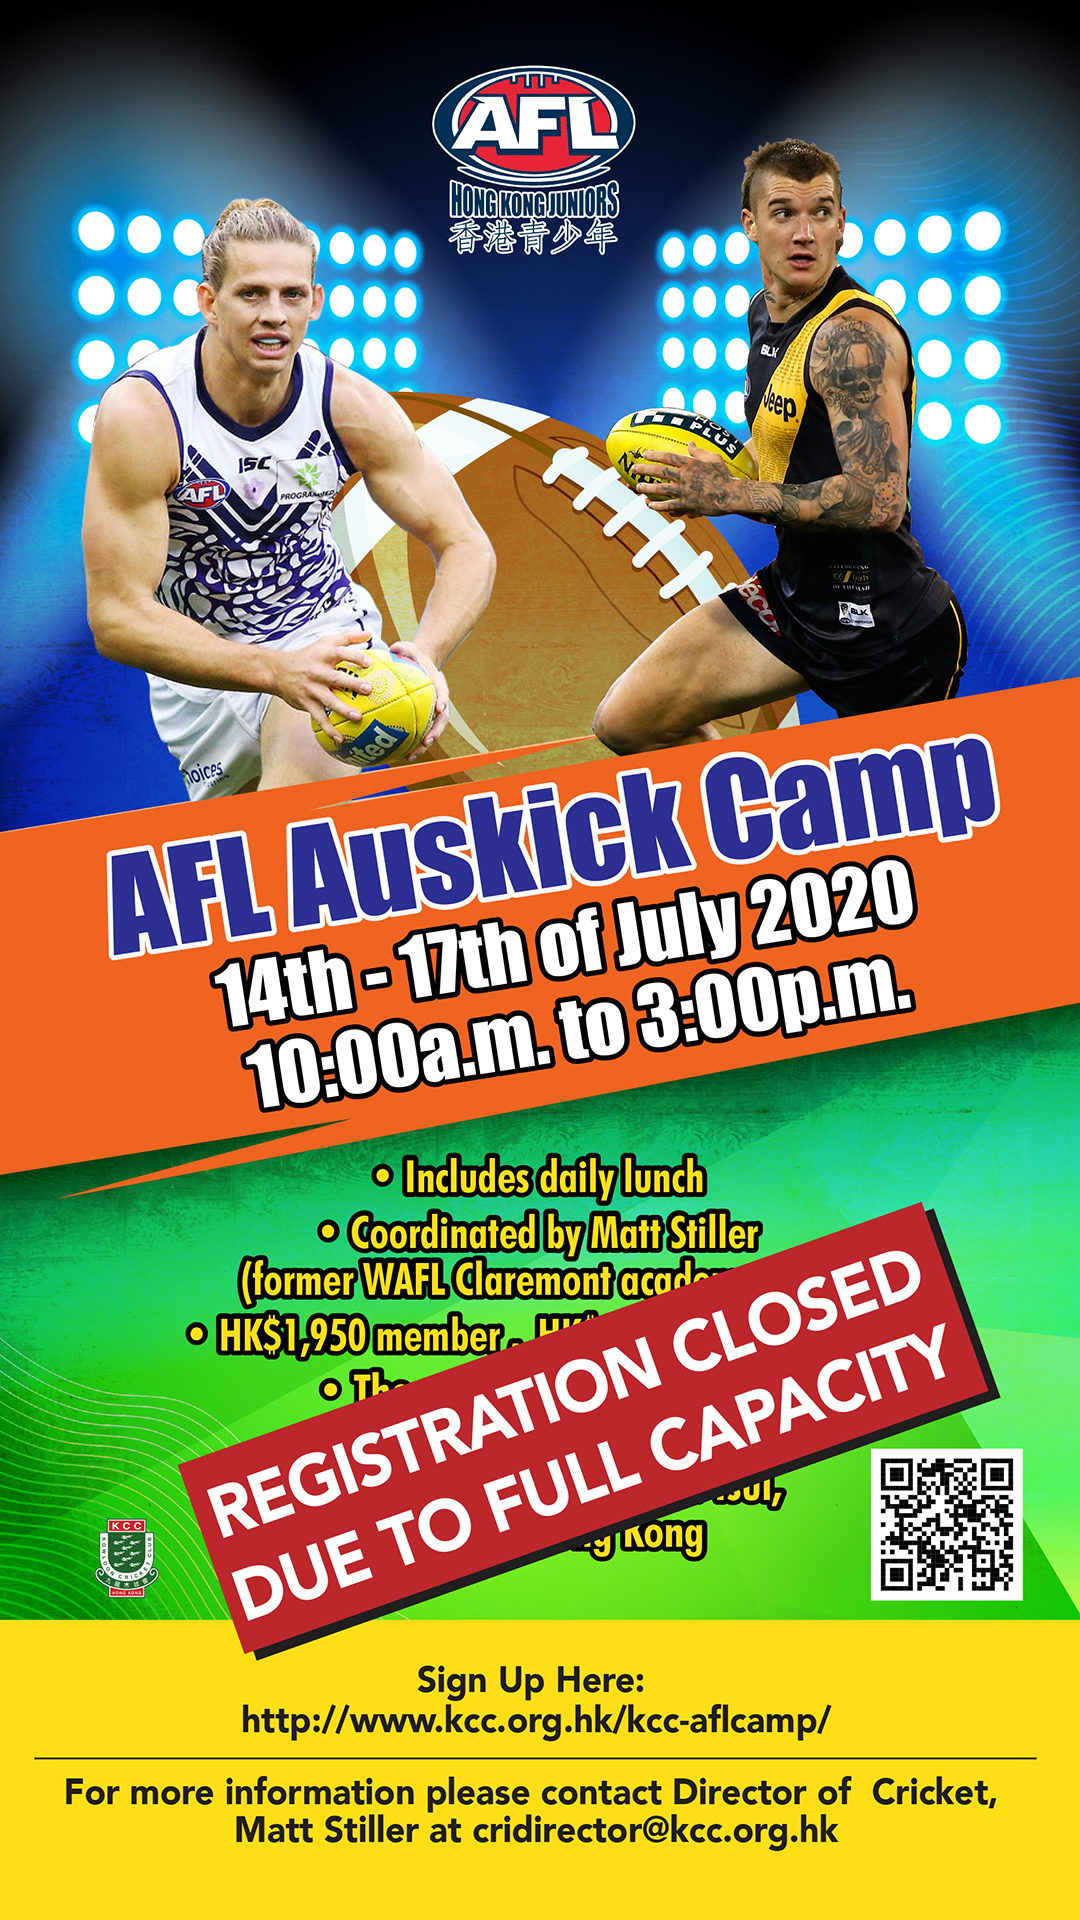 202007-AFL Auskick Camp-ENB-full